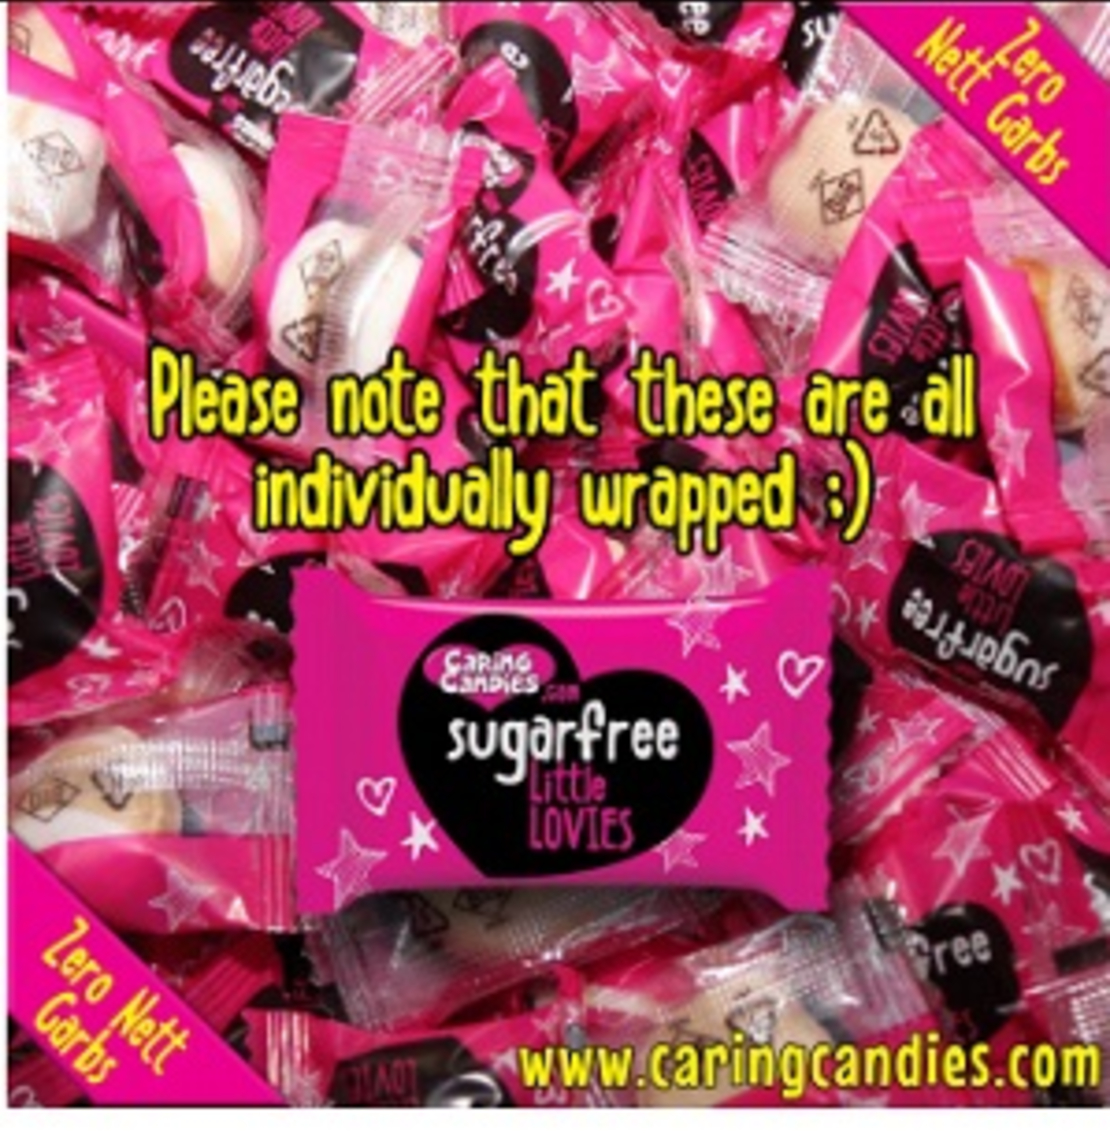 Caring Candies Little Lovies Comforts 100g or 1kg